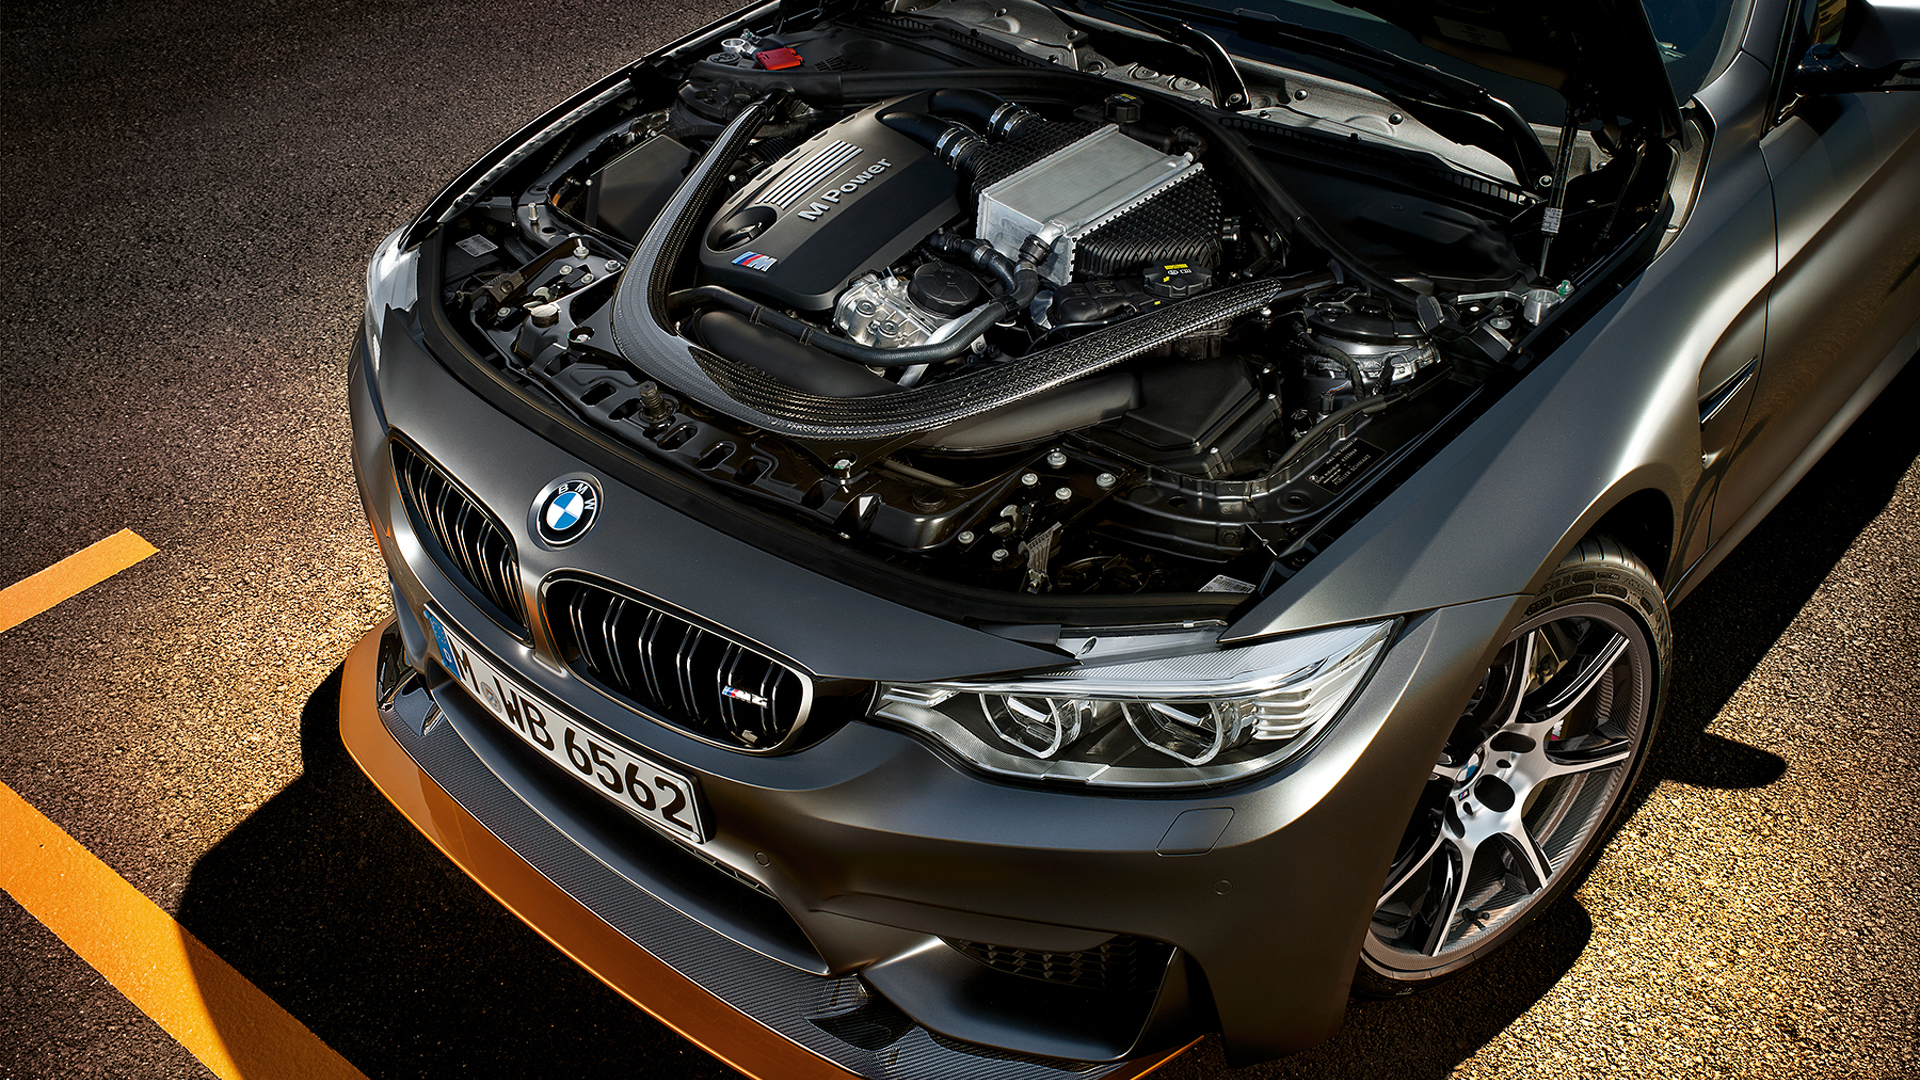 BMW M4 GTS water injection system to trickle down to other models starting 2019